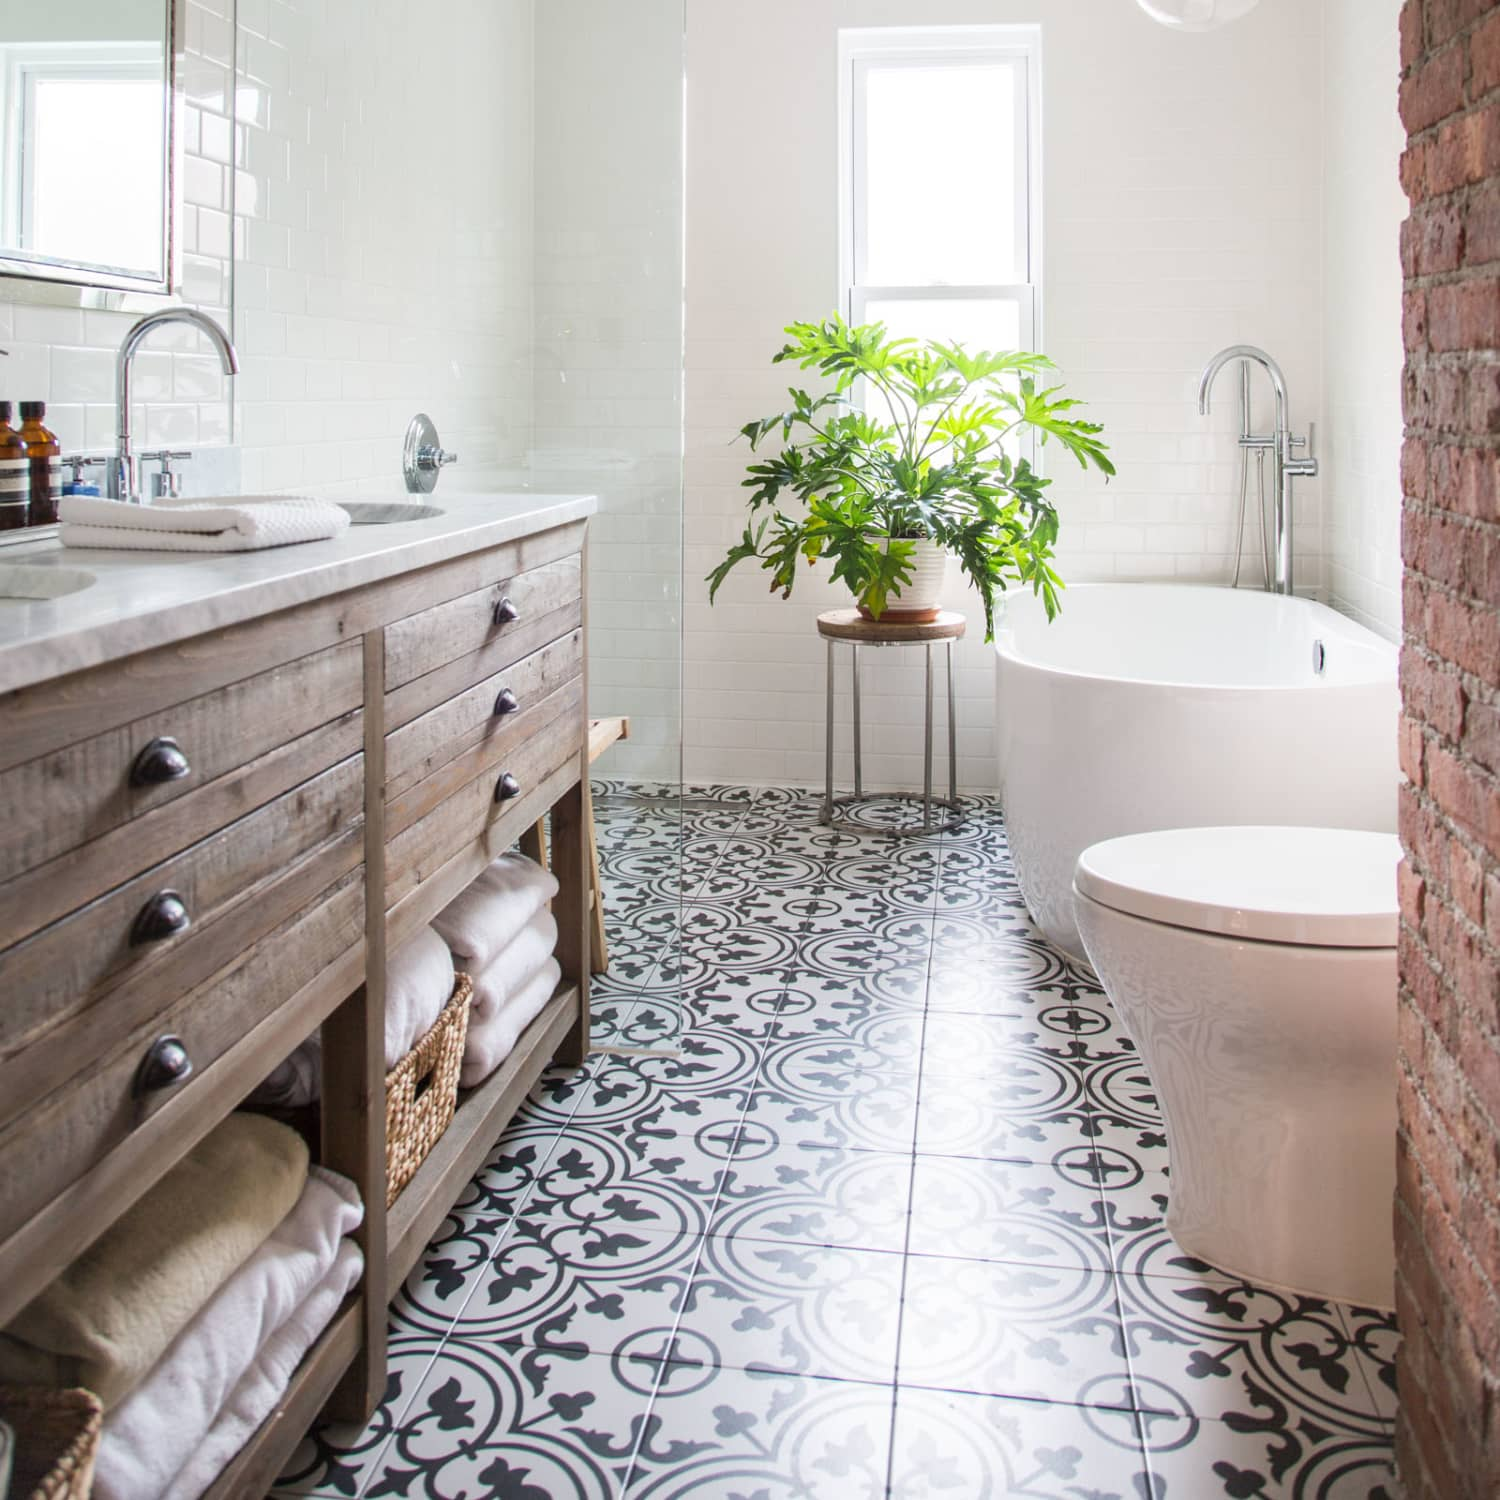 Walk In Shower Disadvantage - Pros and Cons | Apartment Therapy